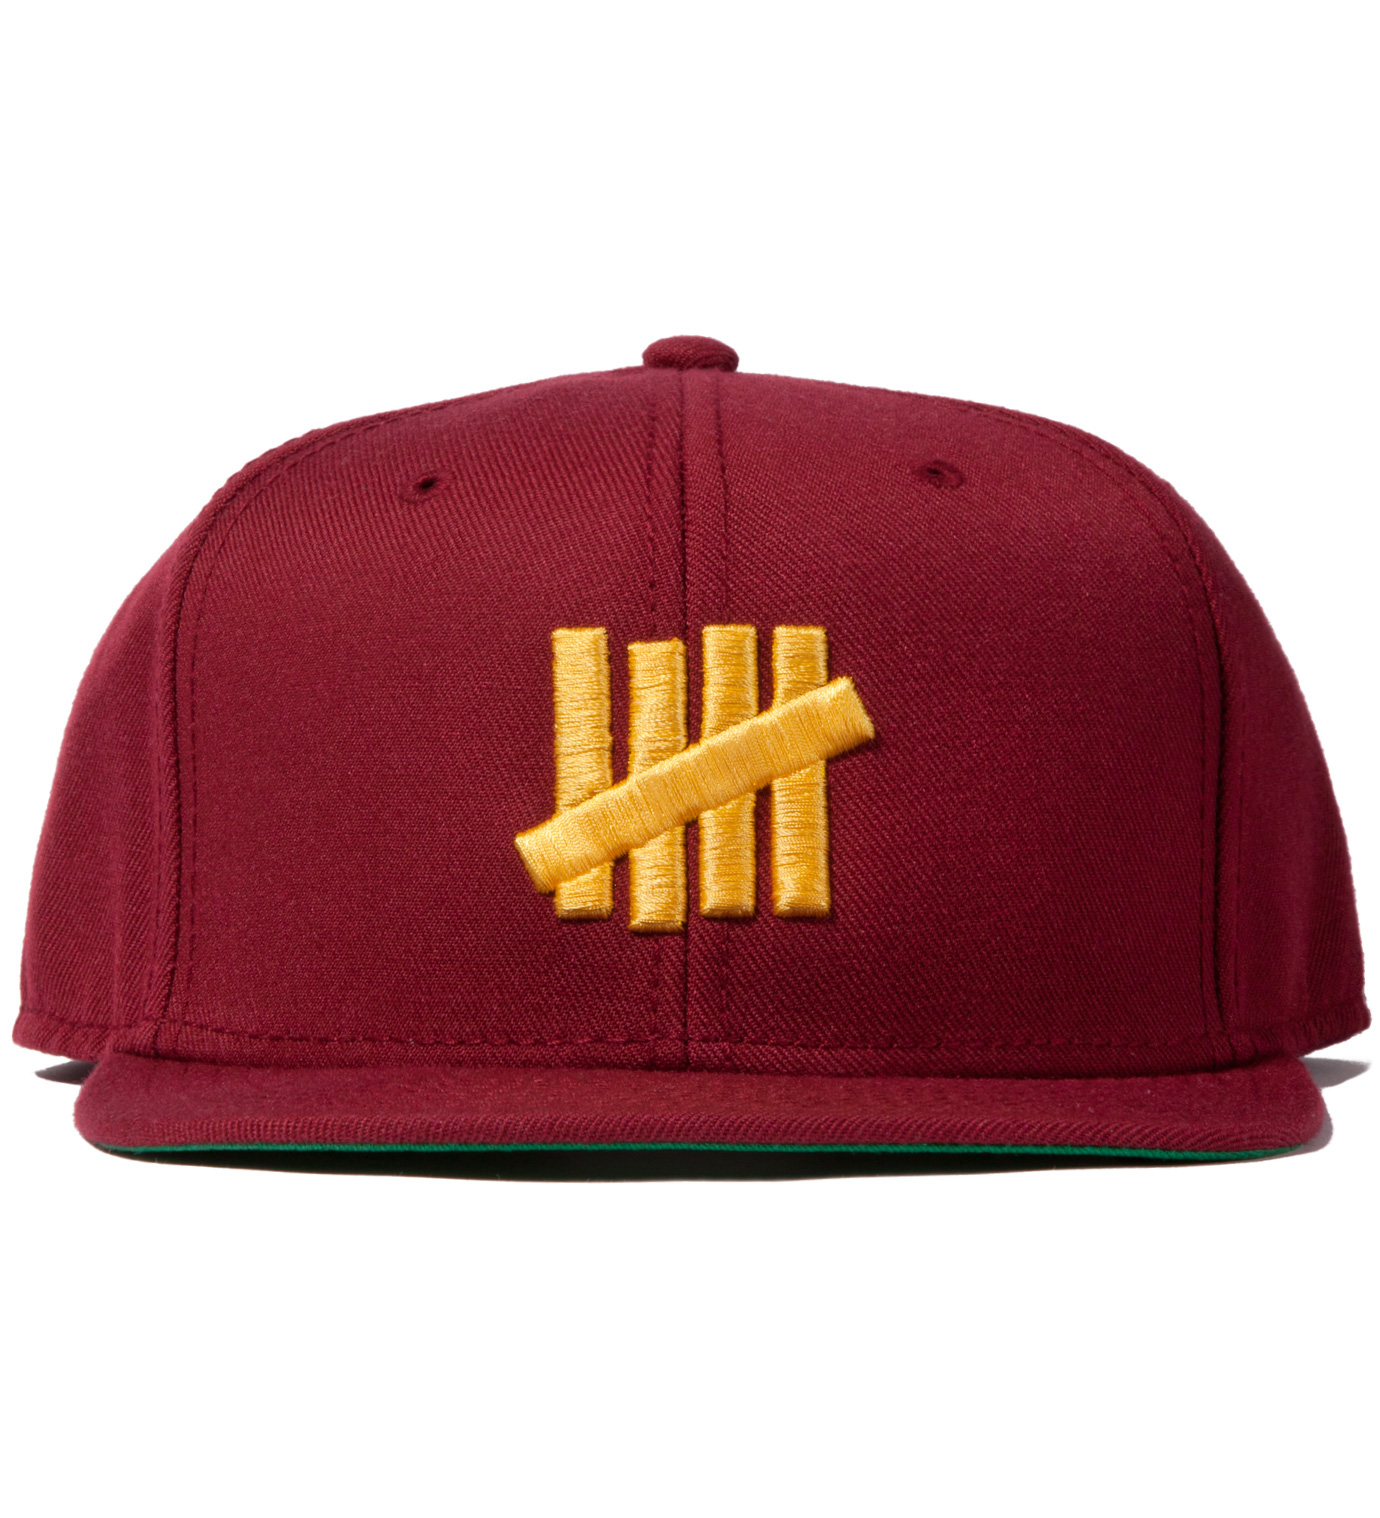 UNDEFEATED Burgundy 5 Strike Snapback Ballcap